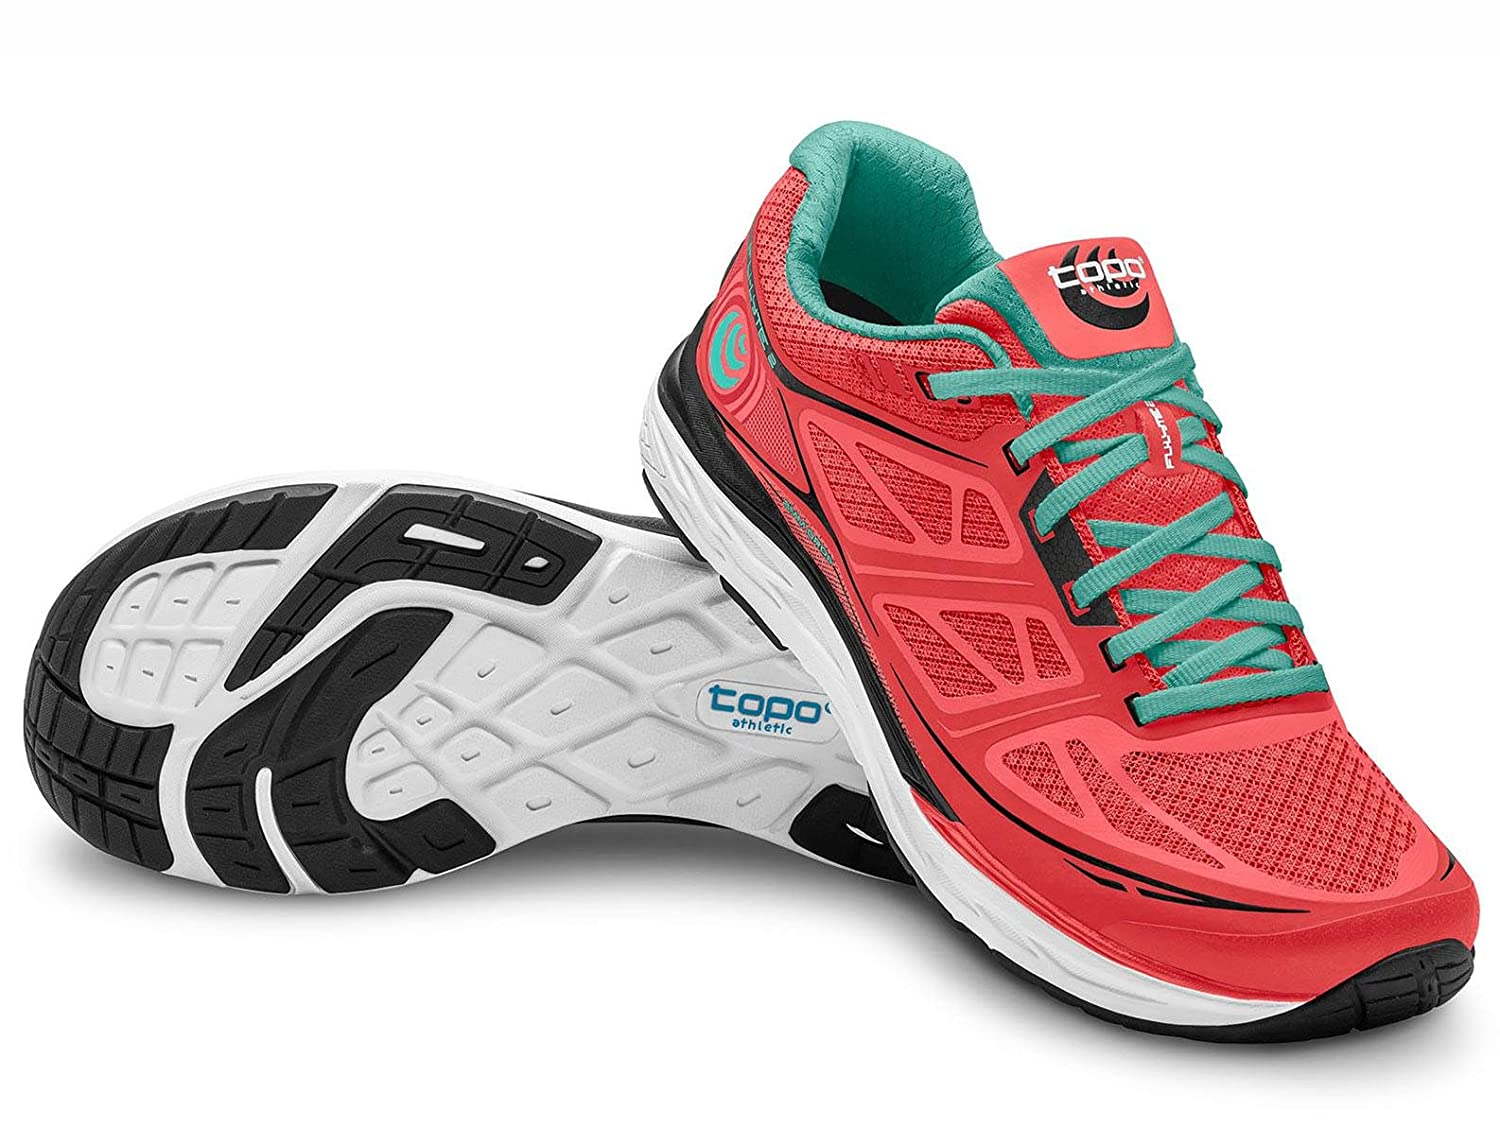 Topo Athletic Fli-Lyte 2 Running Shoes - Women's B071R6LYRY 8 B(M) US|Coral/Aqua